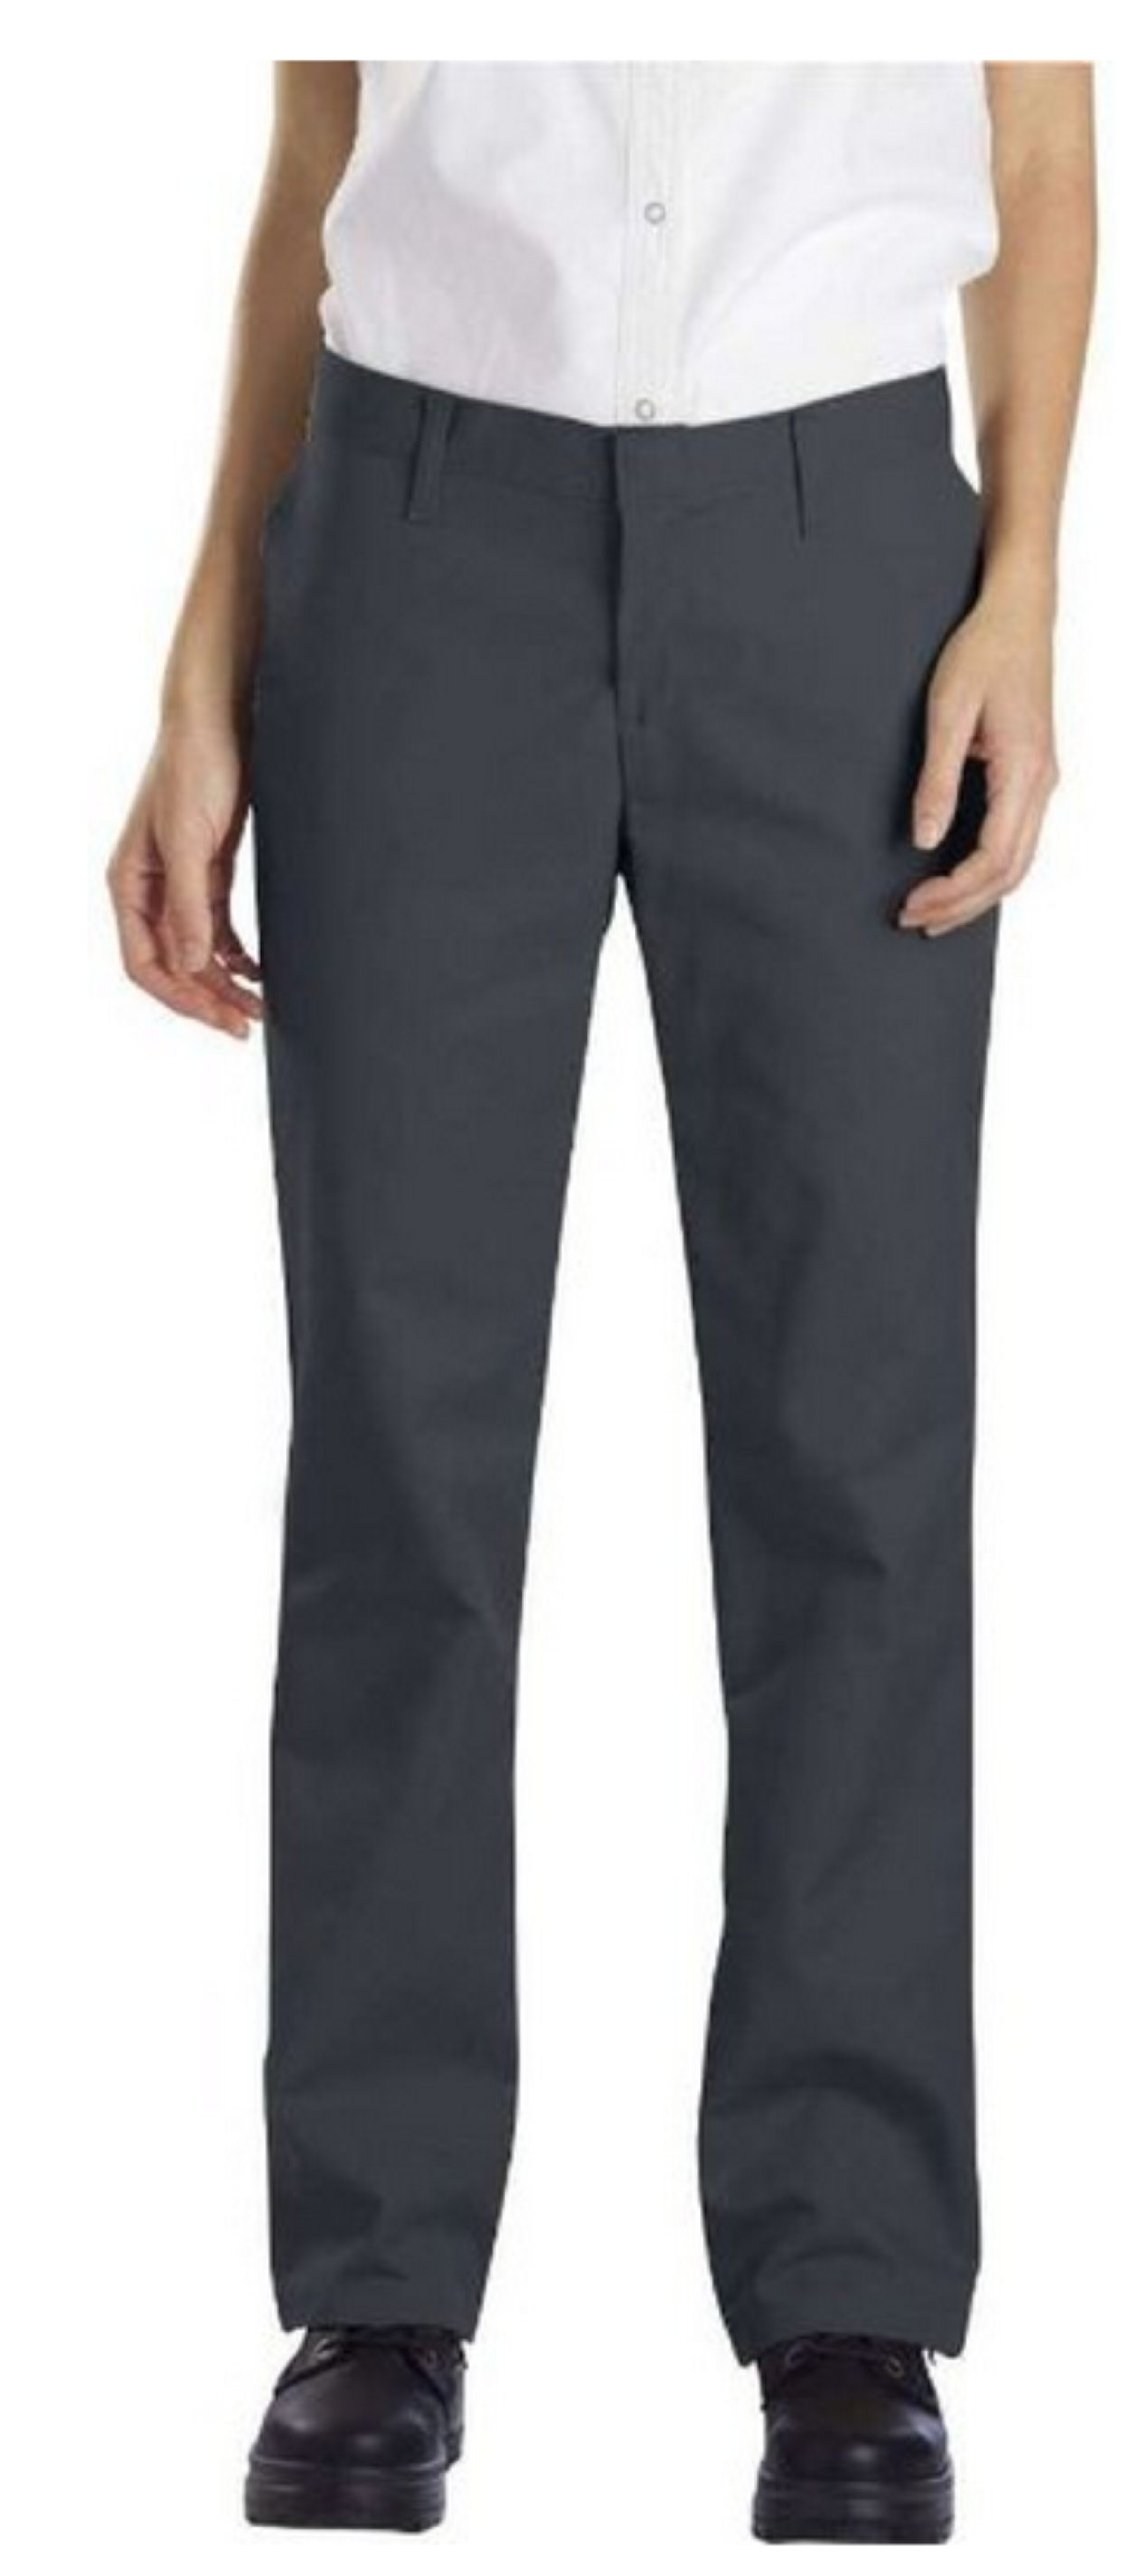 Dickies Occupational Workwear FP322CH 20 RG Polyester/Cotton Relaxed Fit Women's Industrial Flat Front Pant with Straight Leg, 20 Regular, 31-1/2'' Inseam, Charcoal